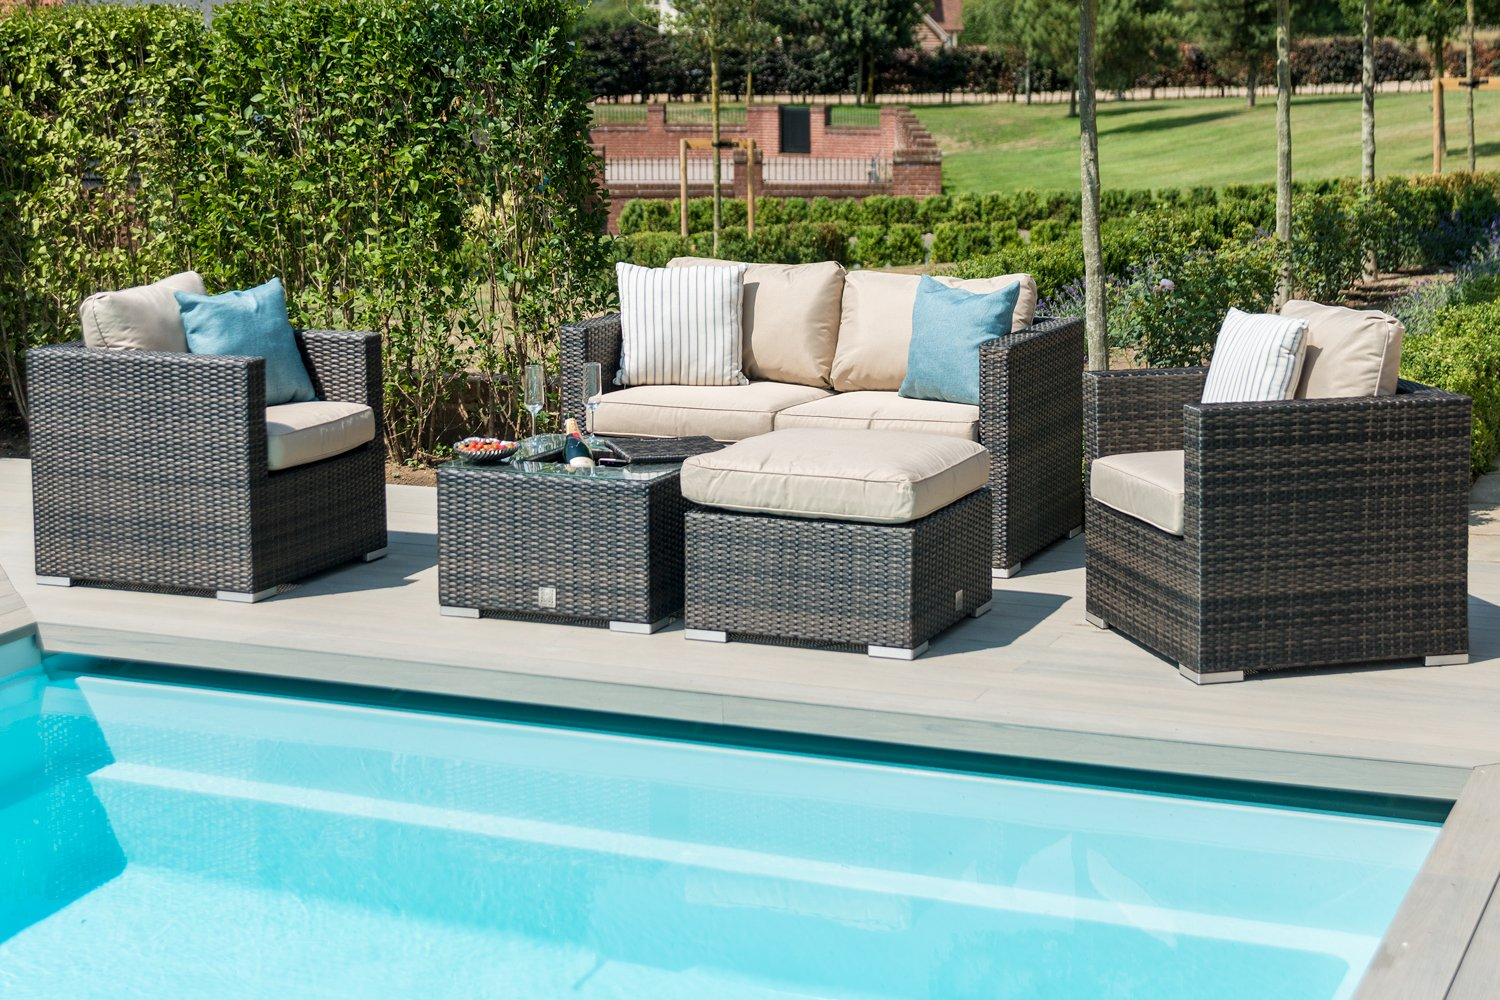 Rattan Corner Sofa Ireland Maze Rattan Georgia 2 Seat Sofa Set With Ice Bucket